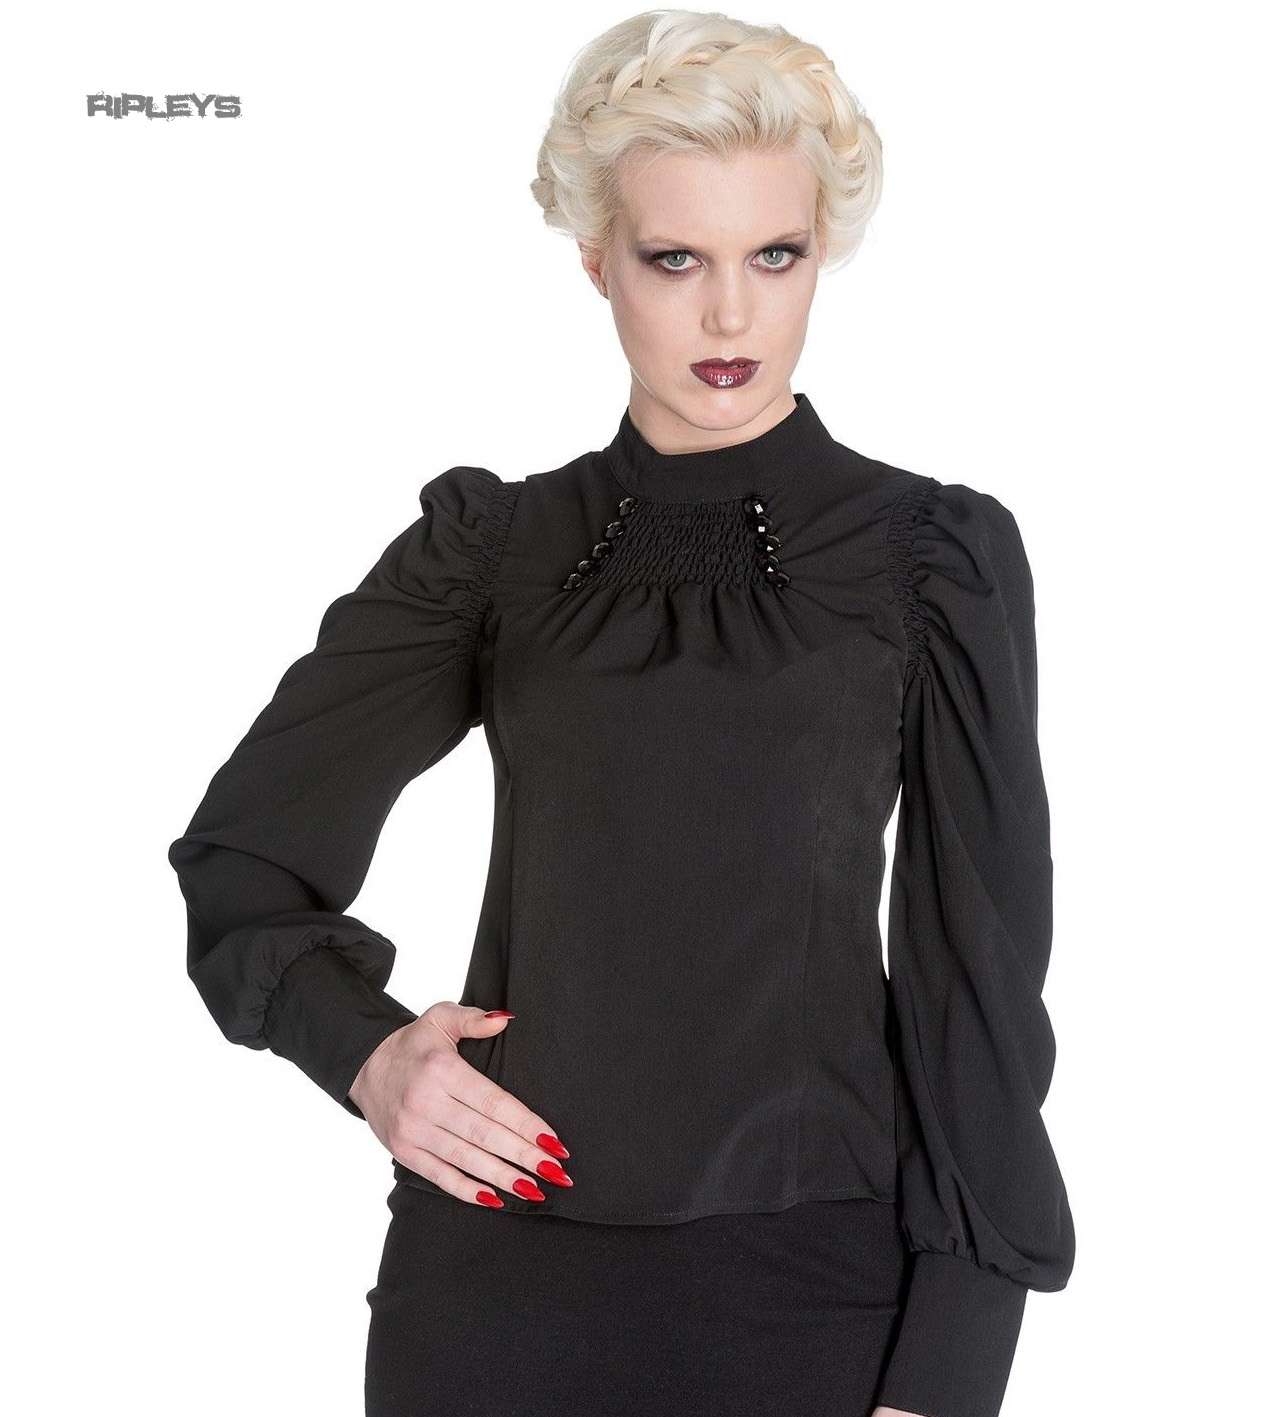 Hell-Bunny-Spin-Doctor-Vampire-Gothic-Shirt-Top-MELROSE-Blouse-All-Sizes thumbnail 6